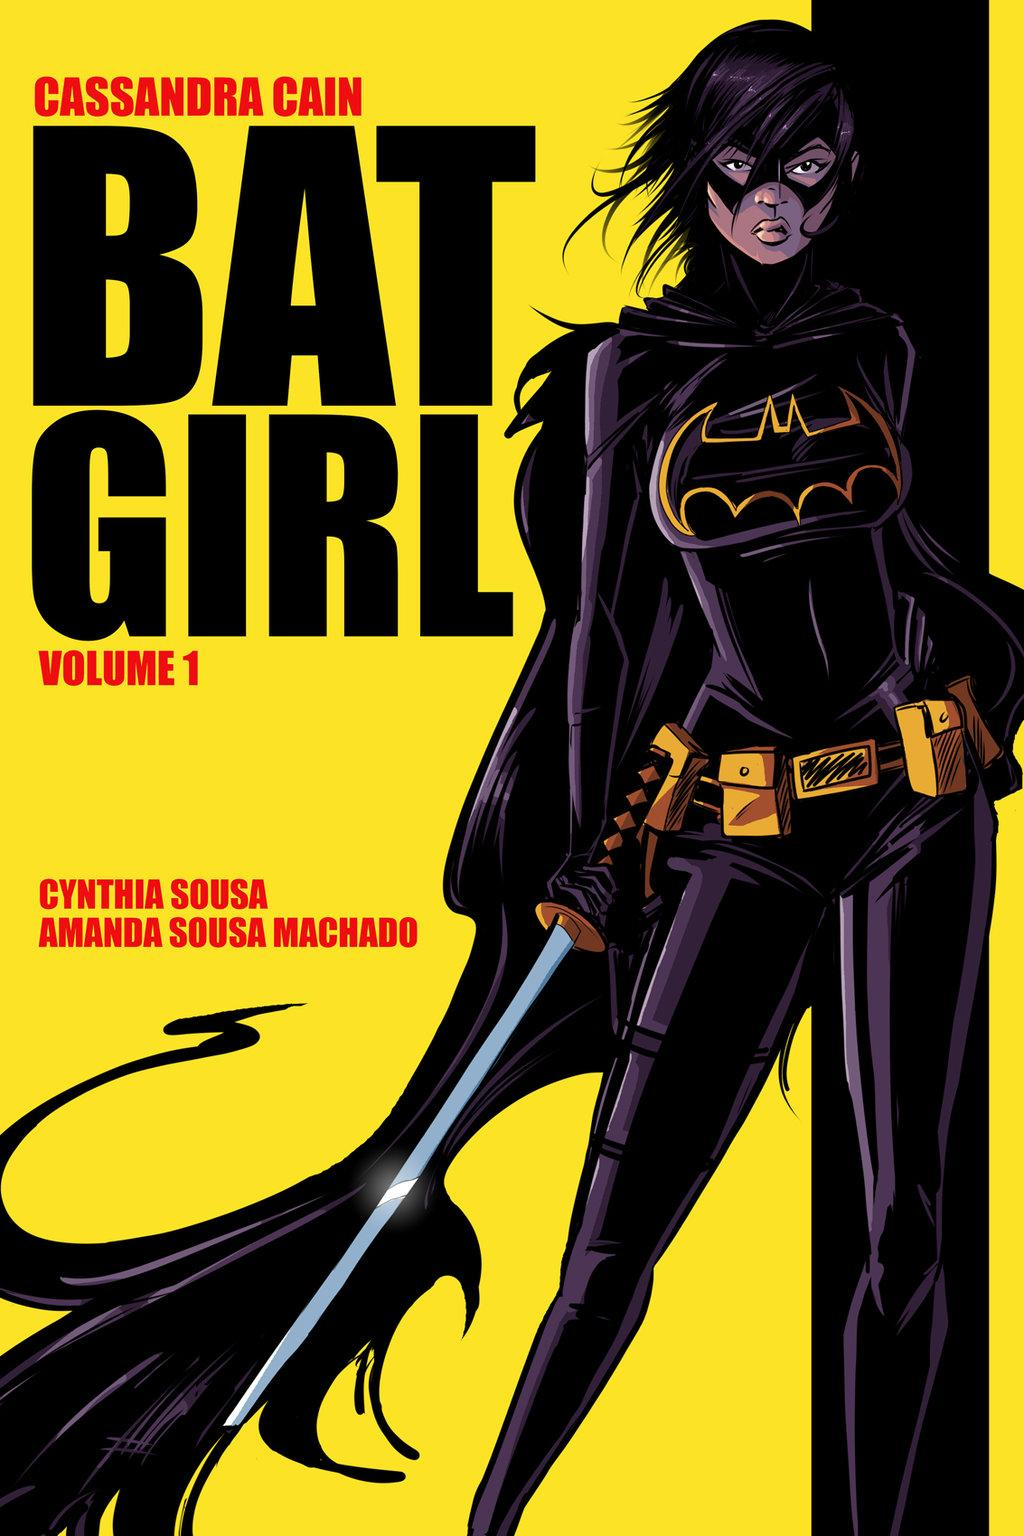 Cassandra Cain (Batgirl, Black Bat) Appreciation - Page 22